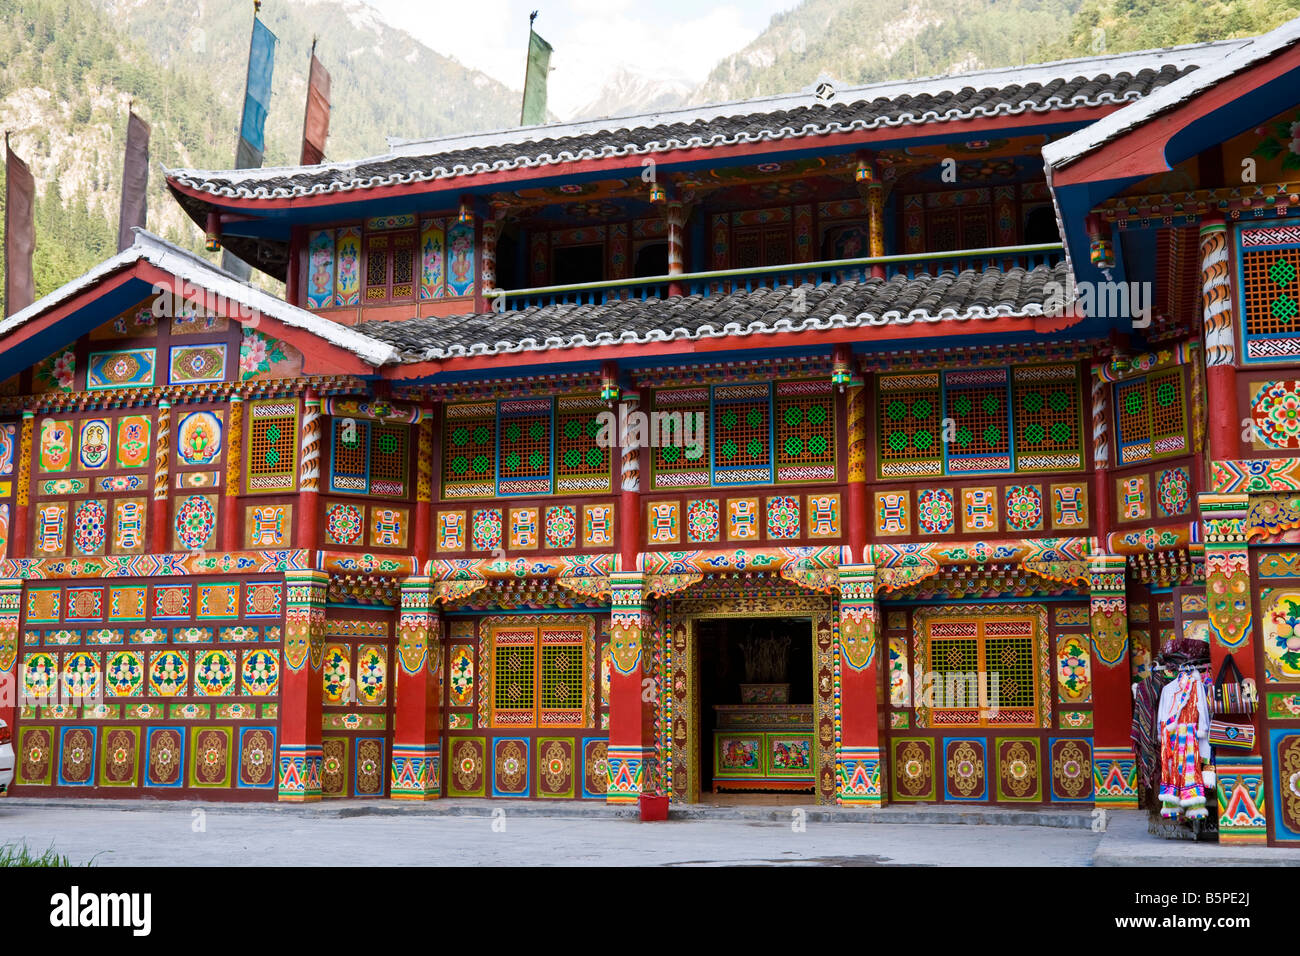 Brightly painted Tibetan tea house in Jiuzhaigou nature reserve Sichuan Province China. JMH3584 - Stock Image